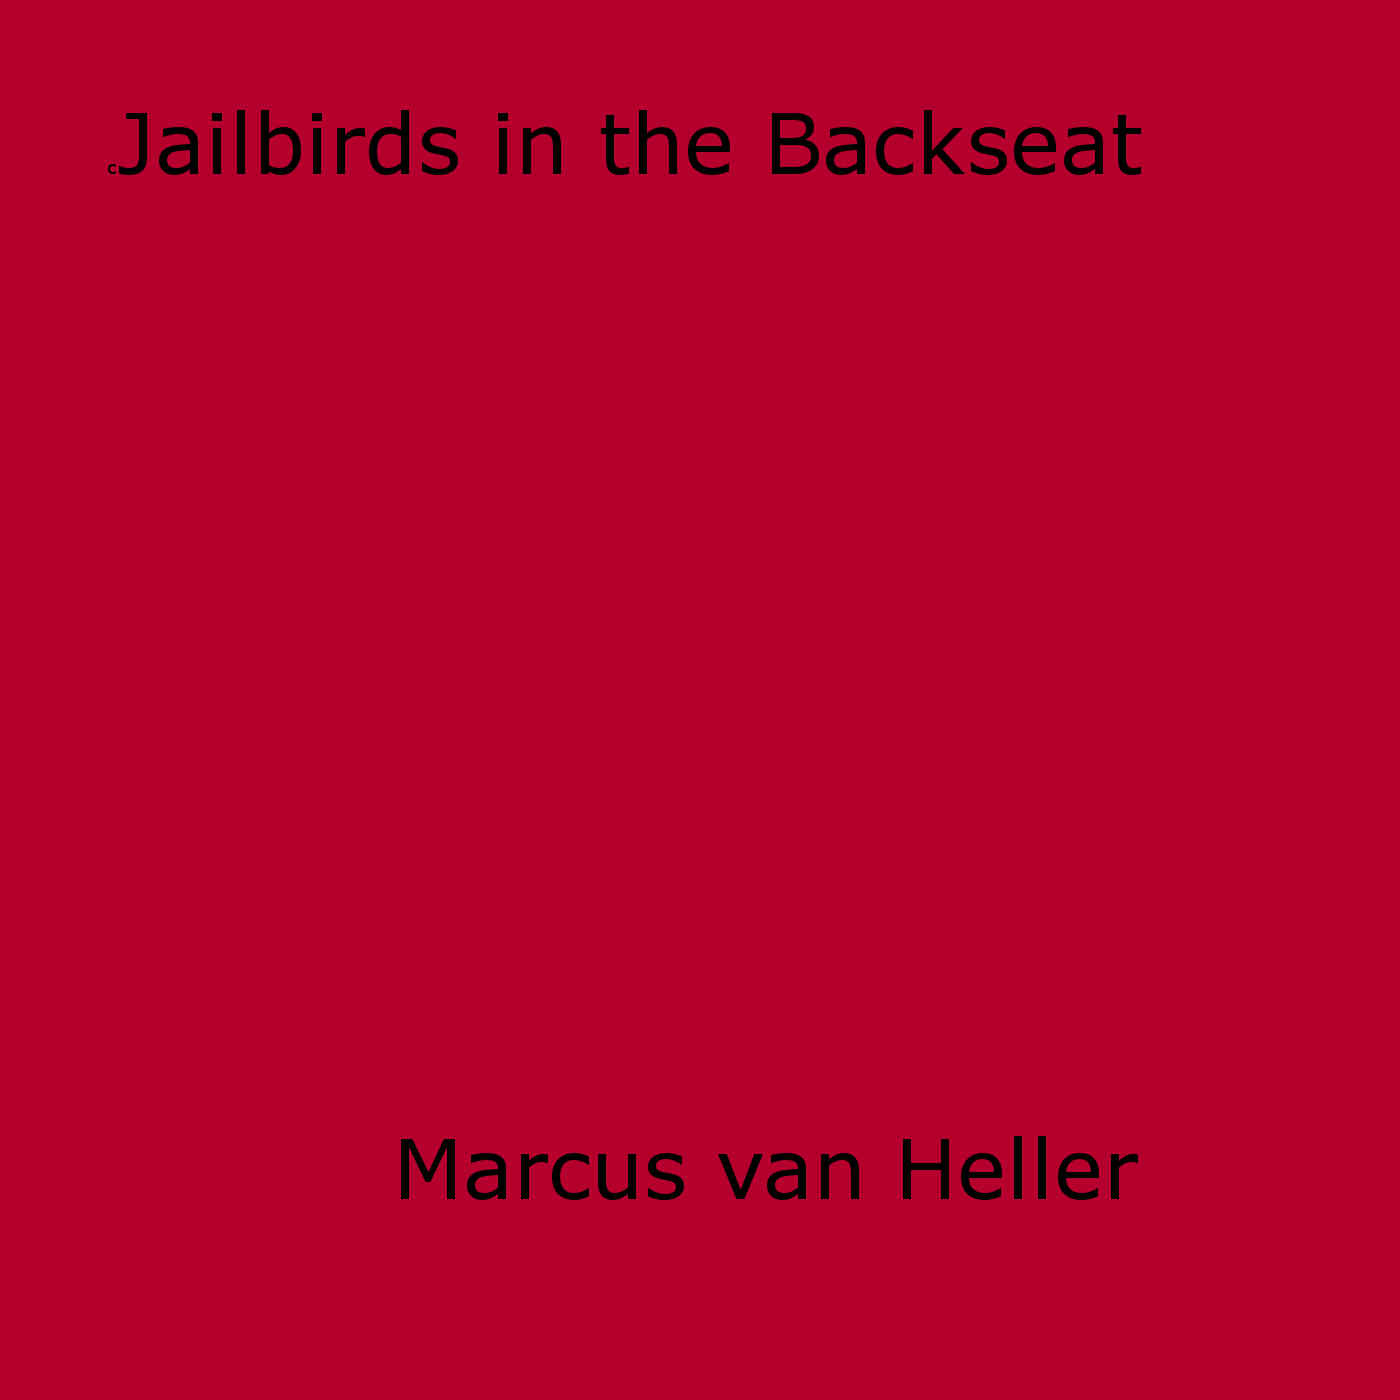 Jailbirds in the Backseat